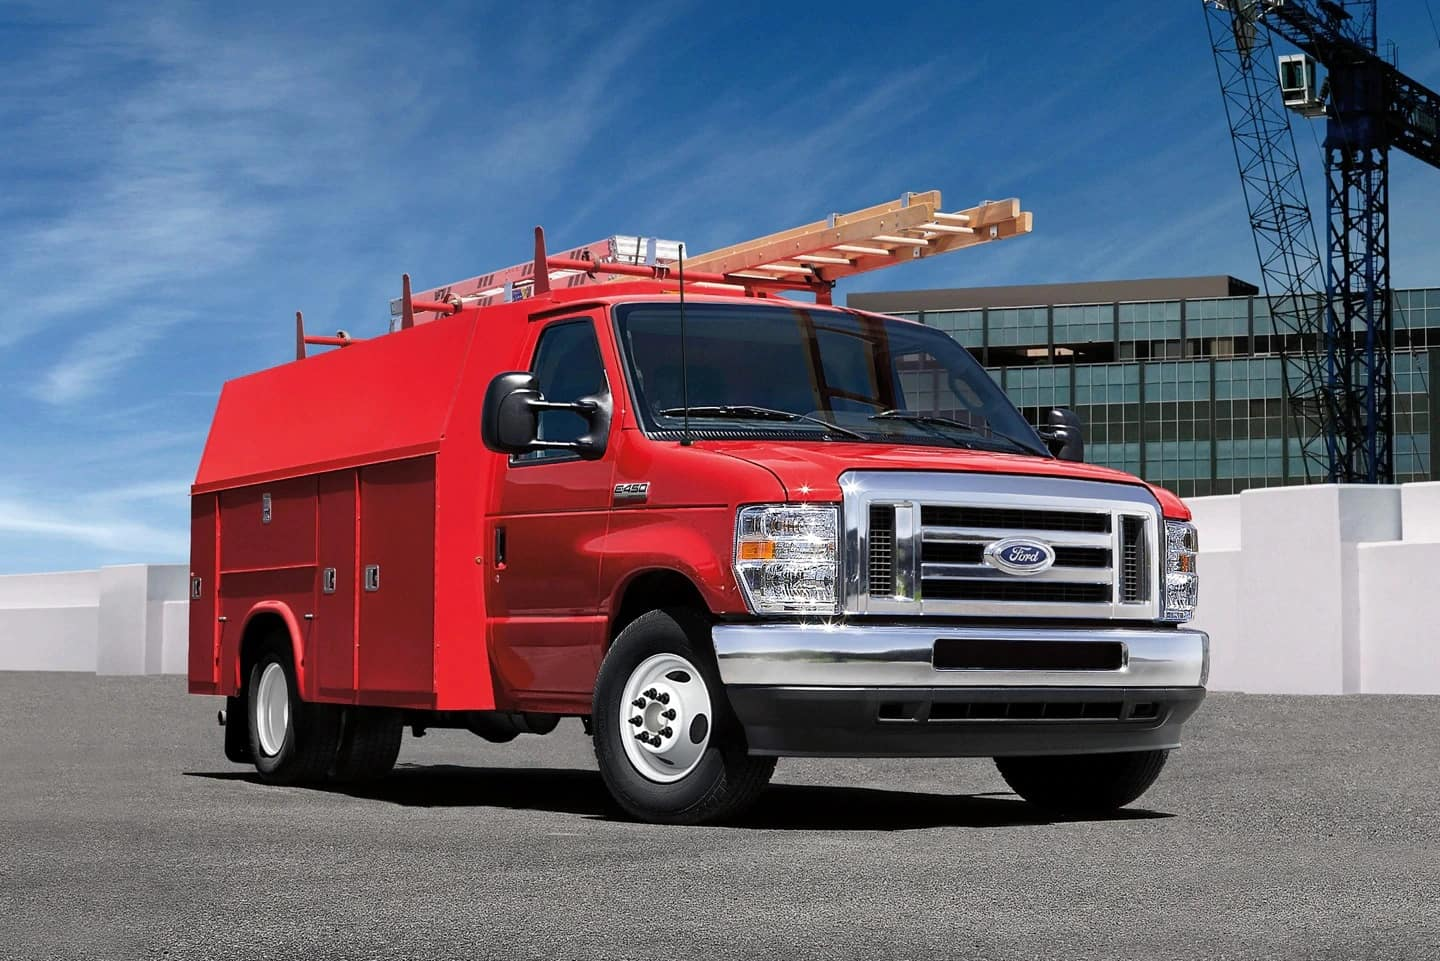 Super duty Ford construction truck